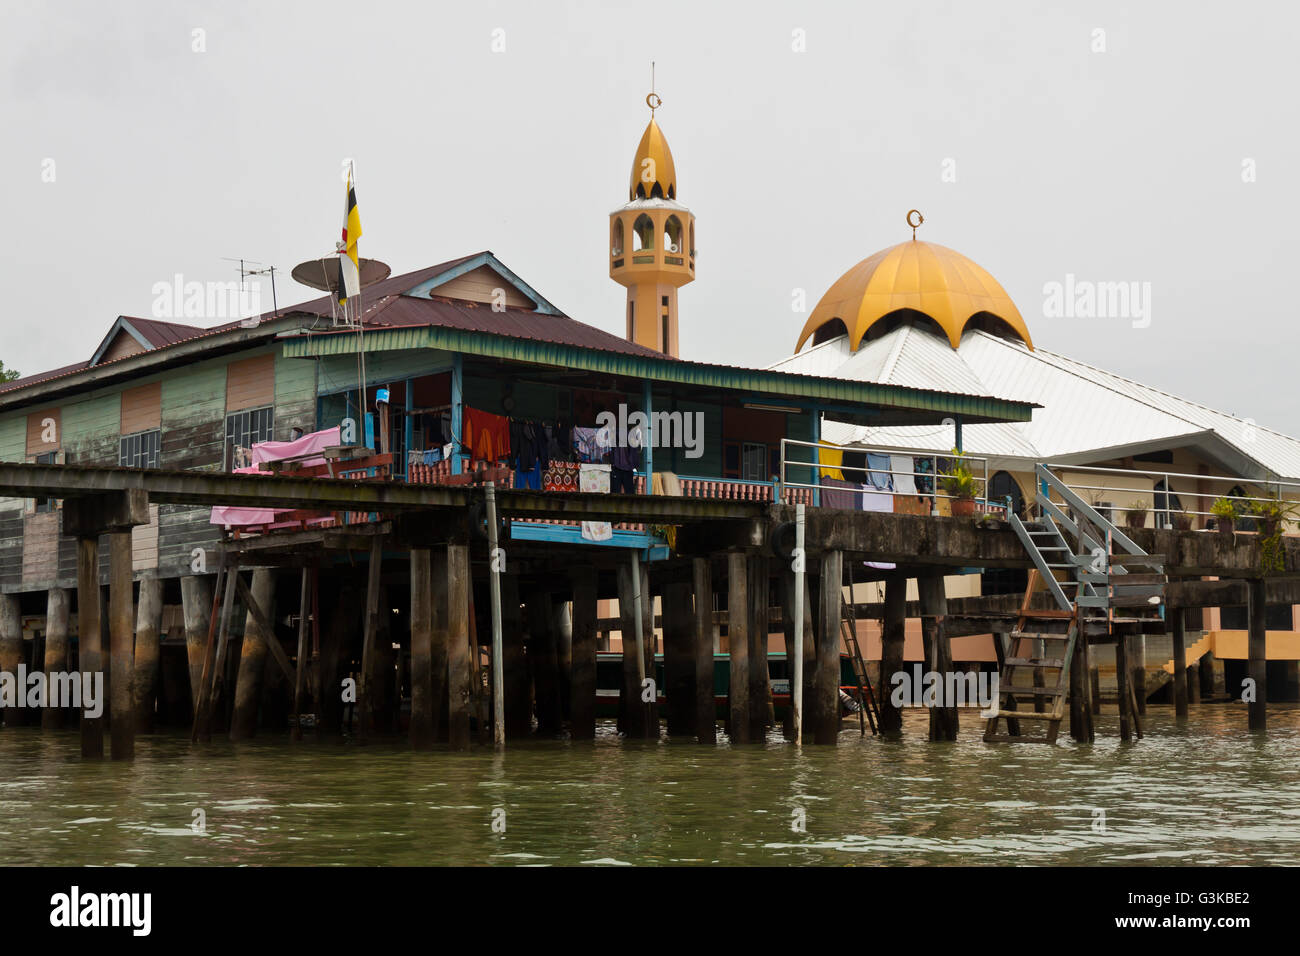 Brunei's water village with Mosque called Kampong Ayer in Bandar Seri Begawan - Stock Image